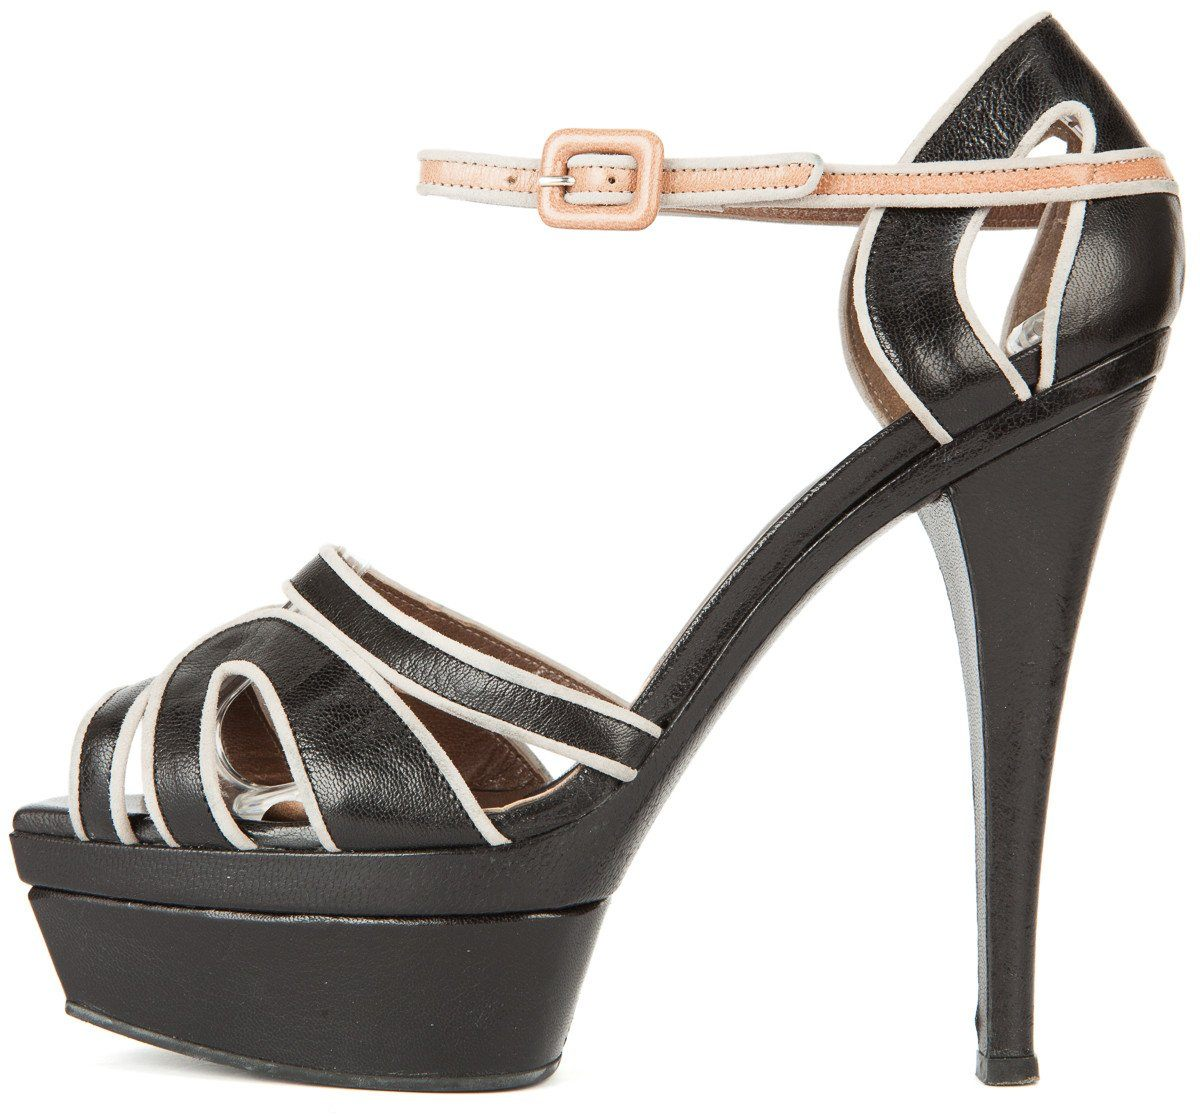 Marni 39 Black and Gray Leather Platform Ankle Strap Sandals